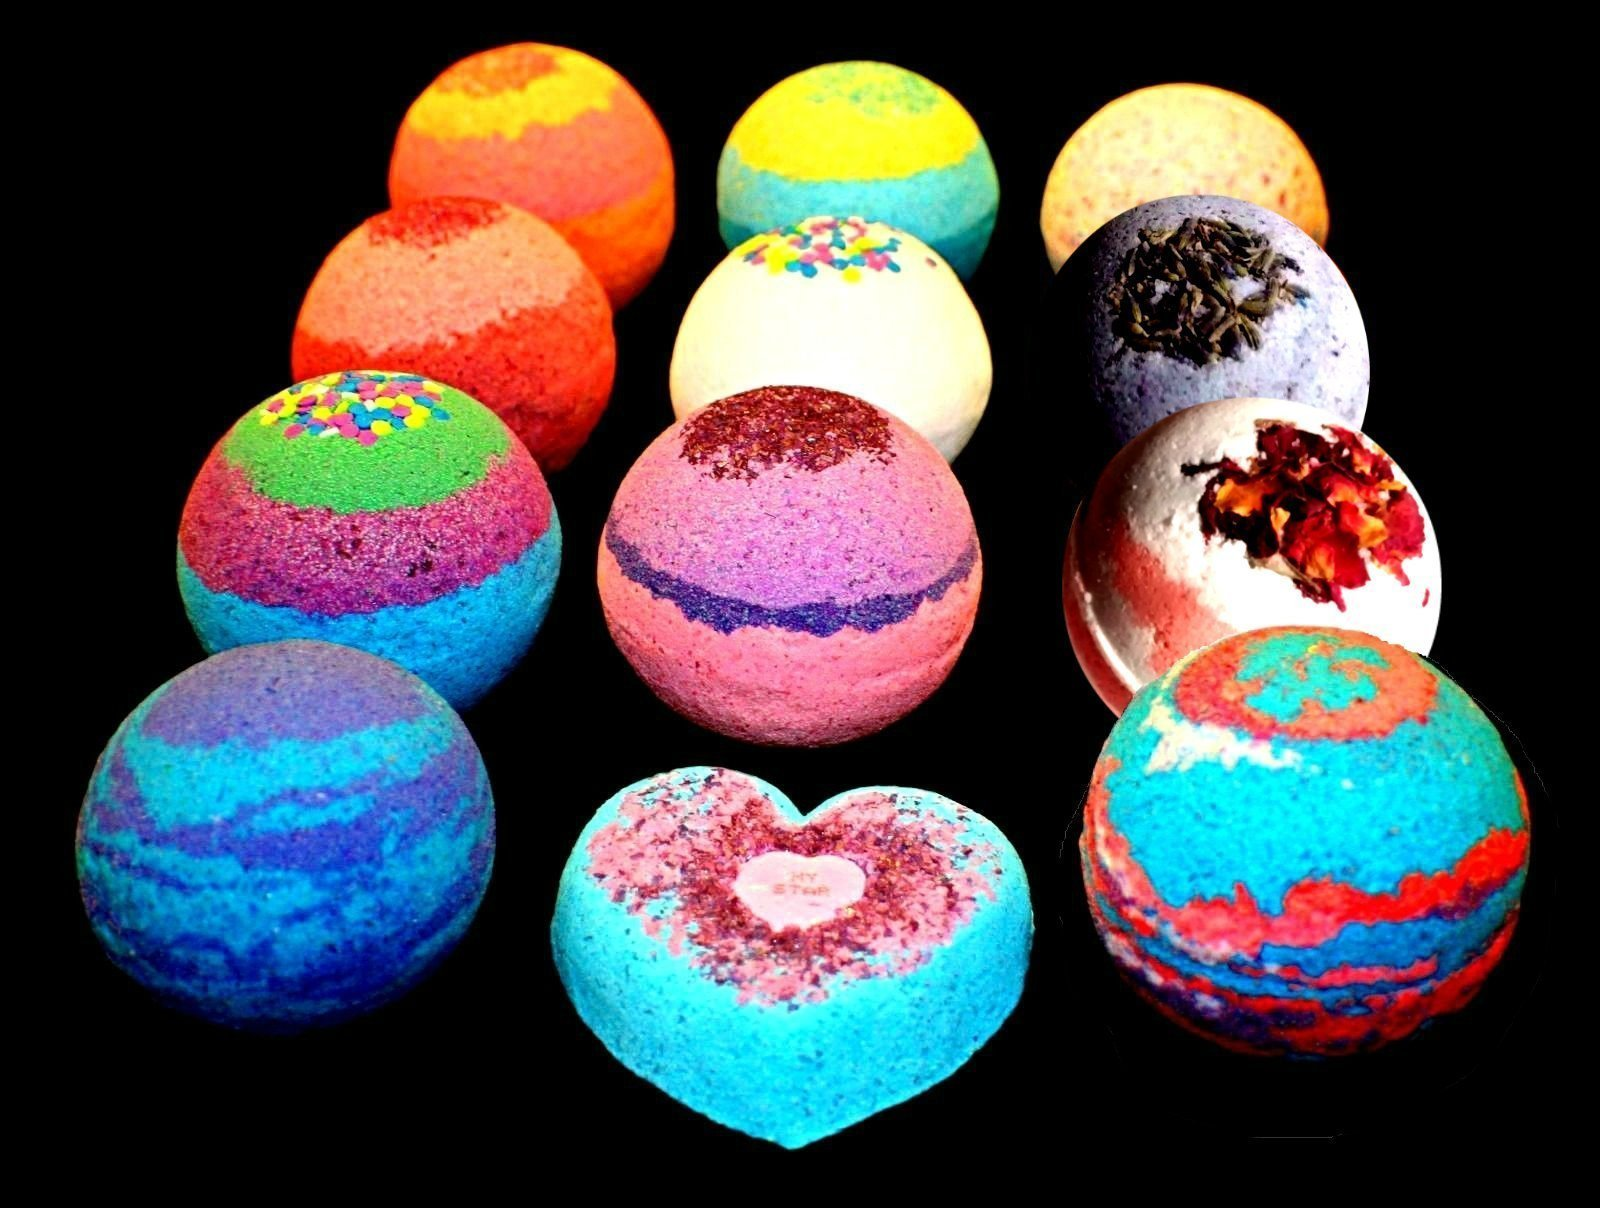 Bath Bombs - 9 pack FIZZY - 4.5 ounce BATH BOMB - Organic Colorful Mix and Match by Soakey Dokey Bath Bombs